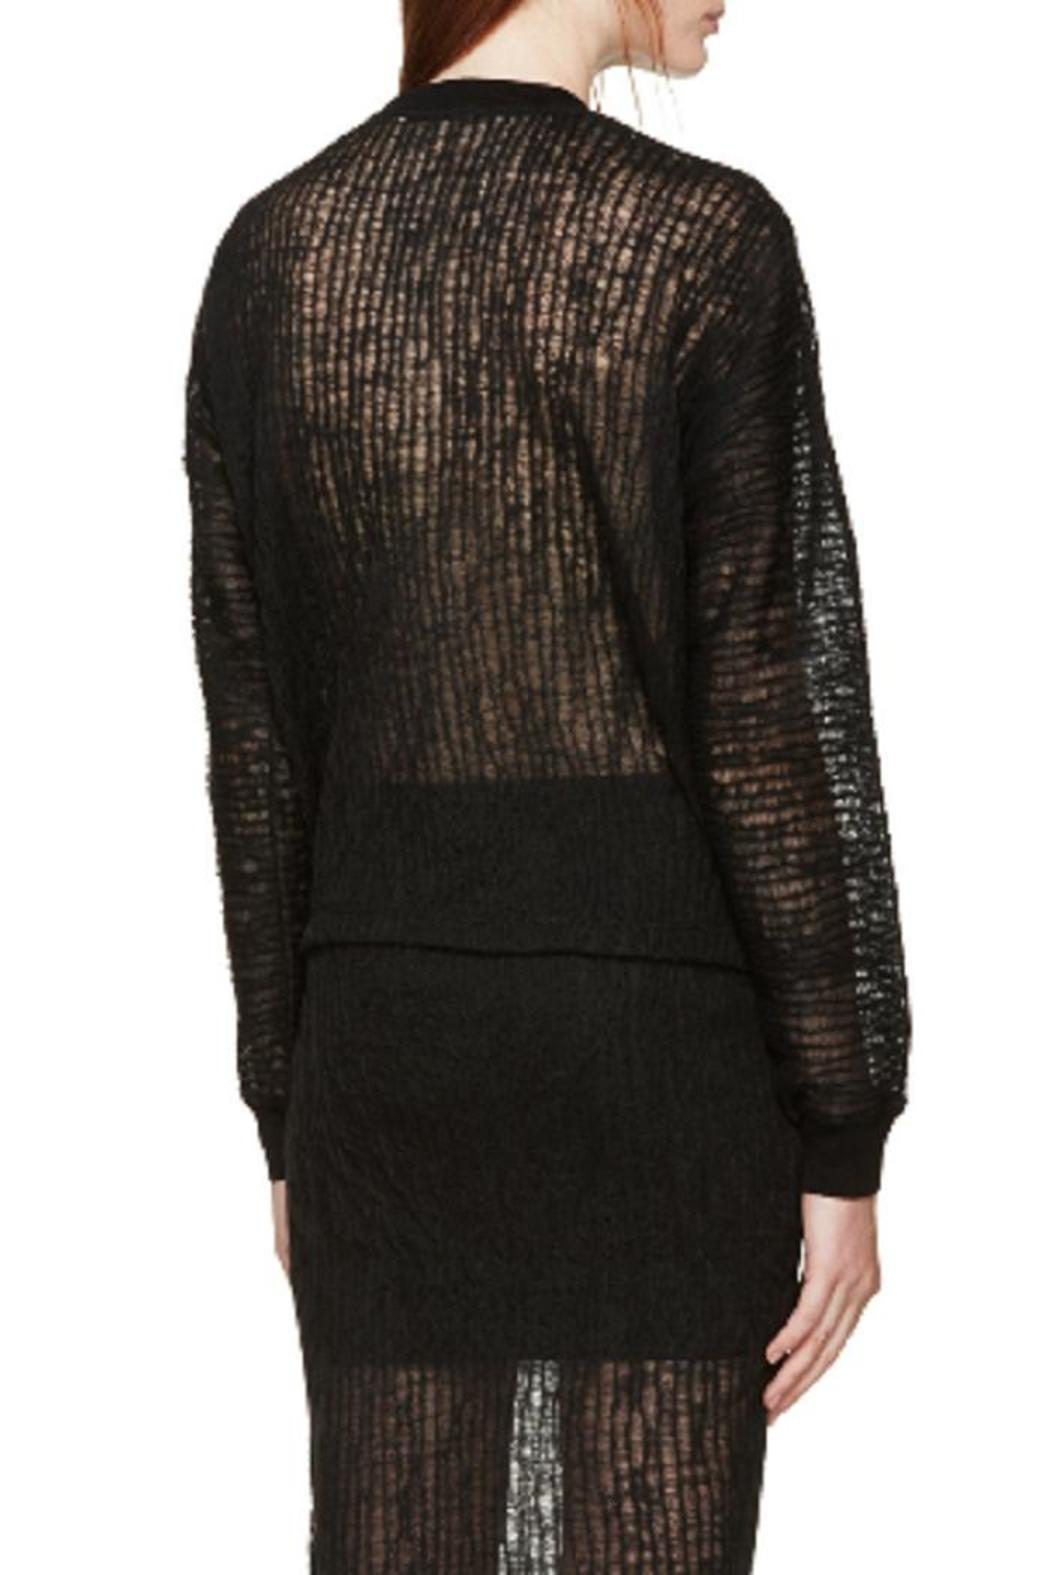 T by Alexander Wang Crinkle Knit Top - Front Full Image